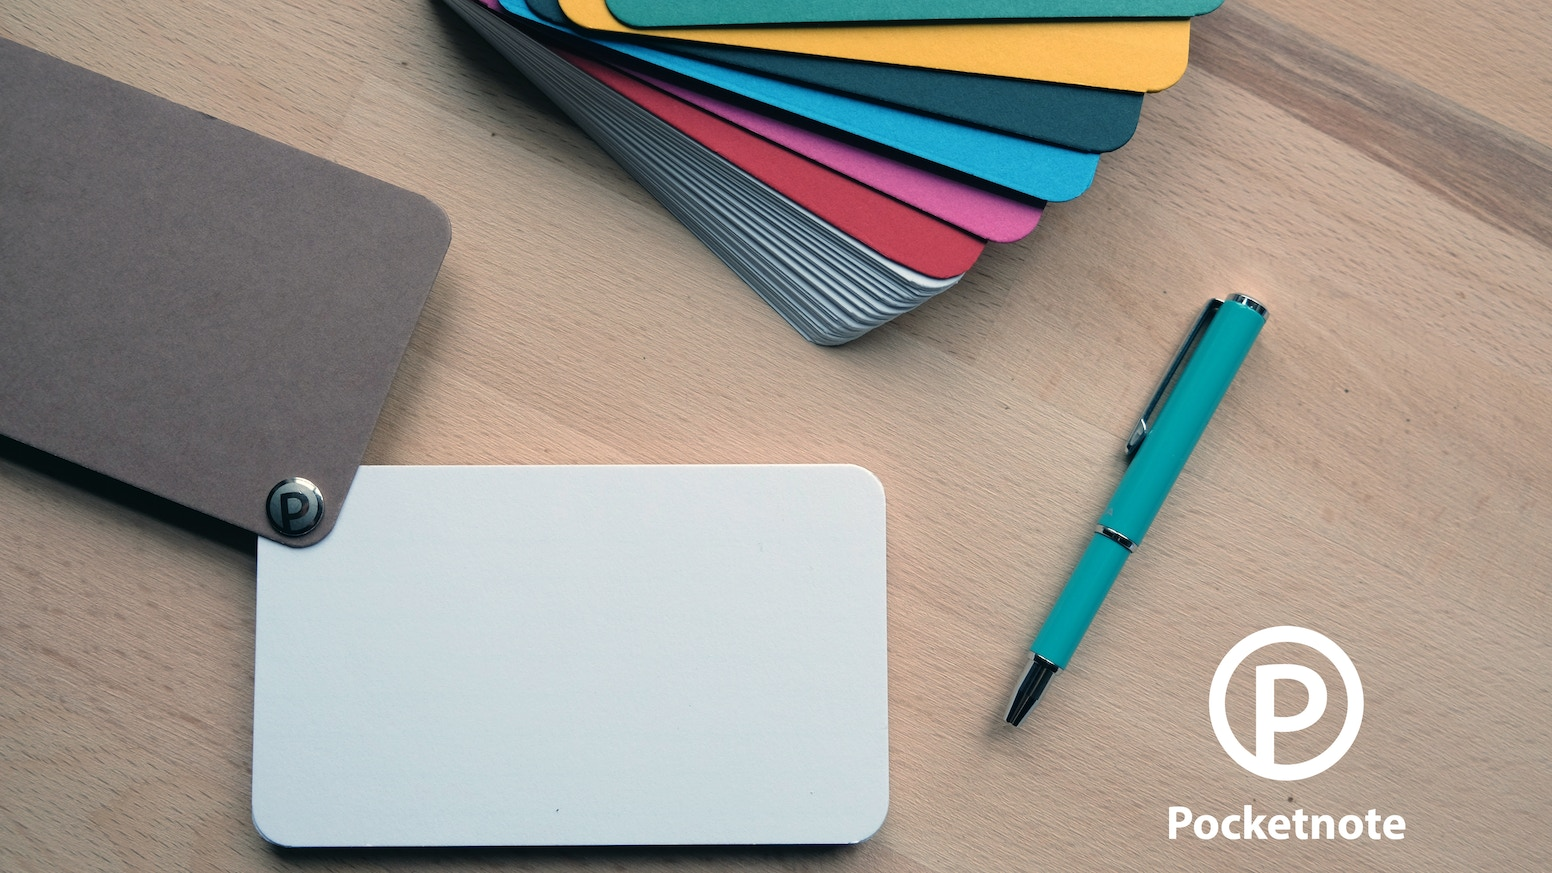 Pocketnote is a simple, pocket-sized notebook designed to turn thoughts into action. Live by your words, as they will make you act.